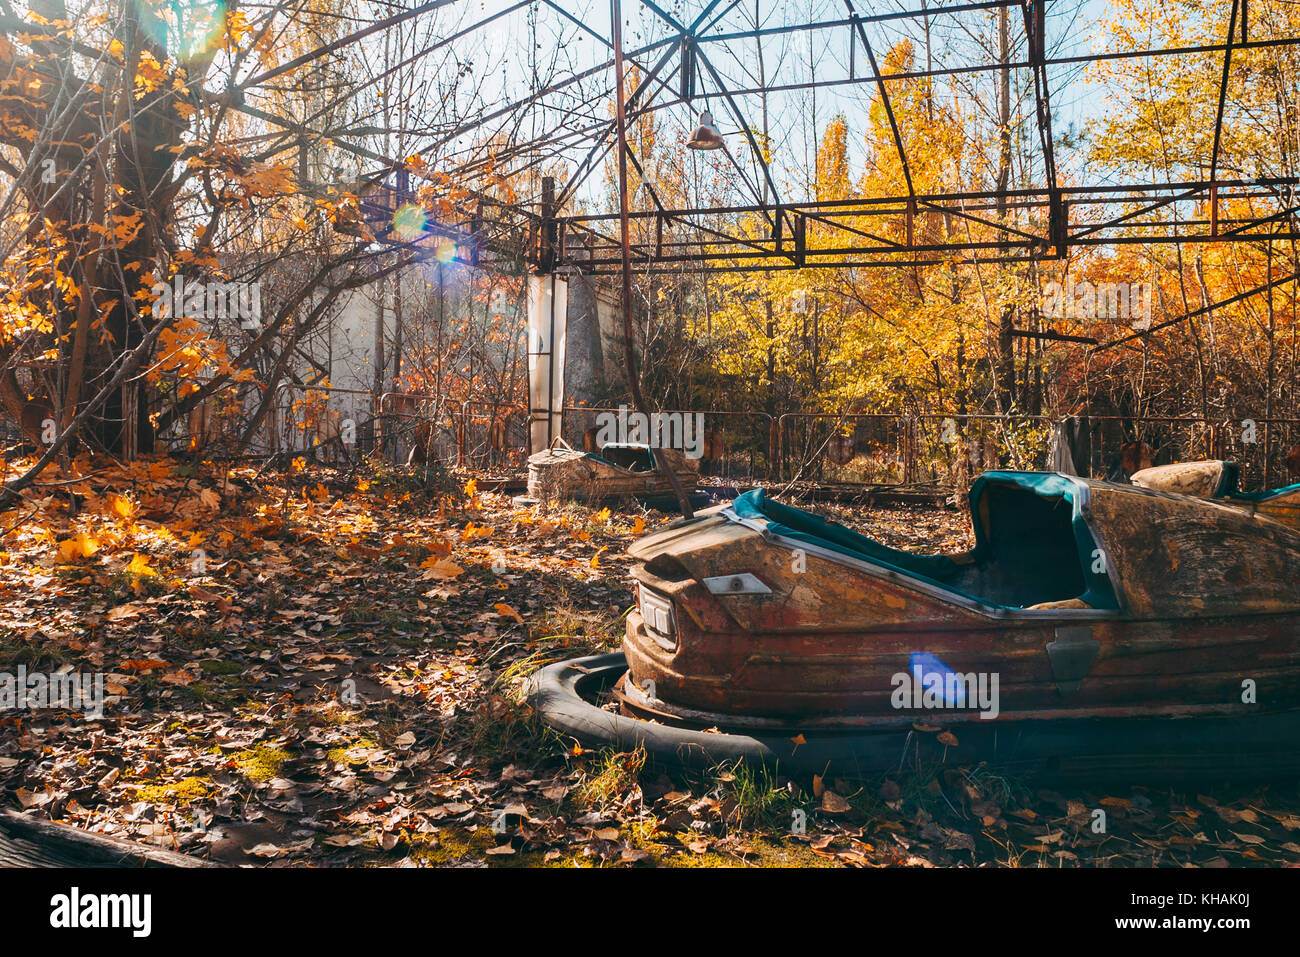 A forgotten bumper car lies amongst autumn leaves in the infamous abandoned theme park in Pripyat, near Chernobyl, - Stock Image